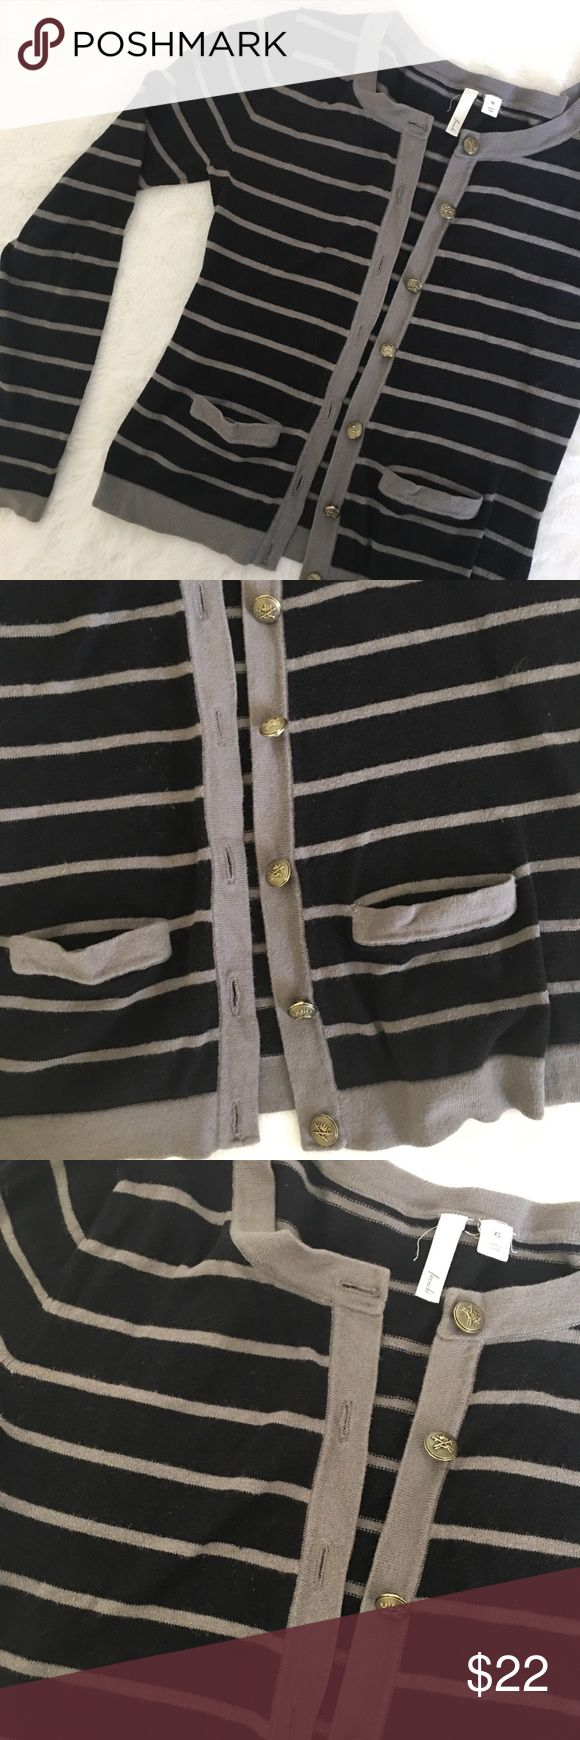 Nordstrom gray and black nautical cardigan Frenchi from Nordstrom gray and black striped cardigan. Cute nautical inspired gold buttons and front little pockets. Size XS. Gently used, good condition. Offers welcome. Bundle & save. Nordstrom Sweaters Cardigans